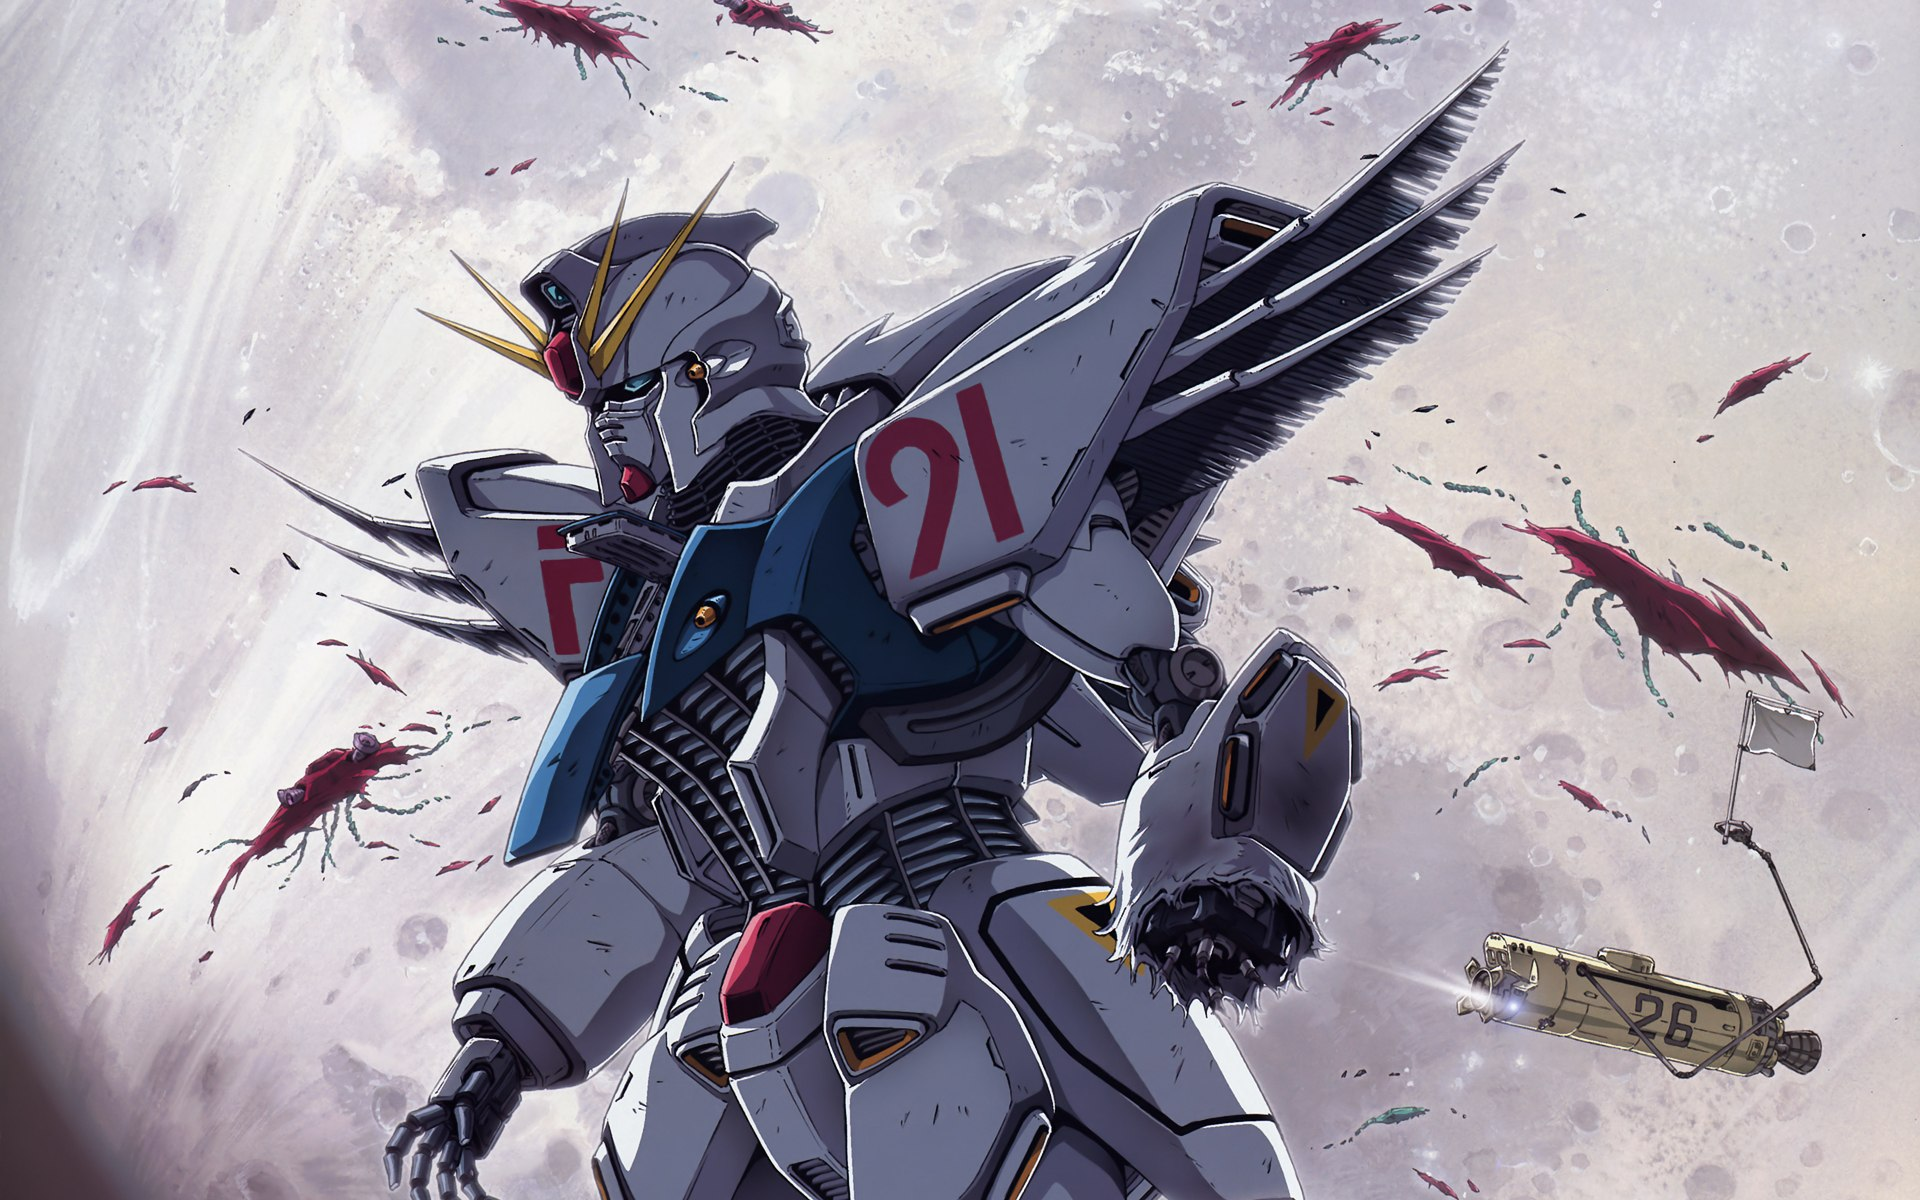 Gundam wallpaper 1920x1200 HQ WALLPAPER   40977 1920x1200